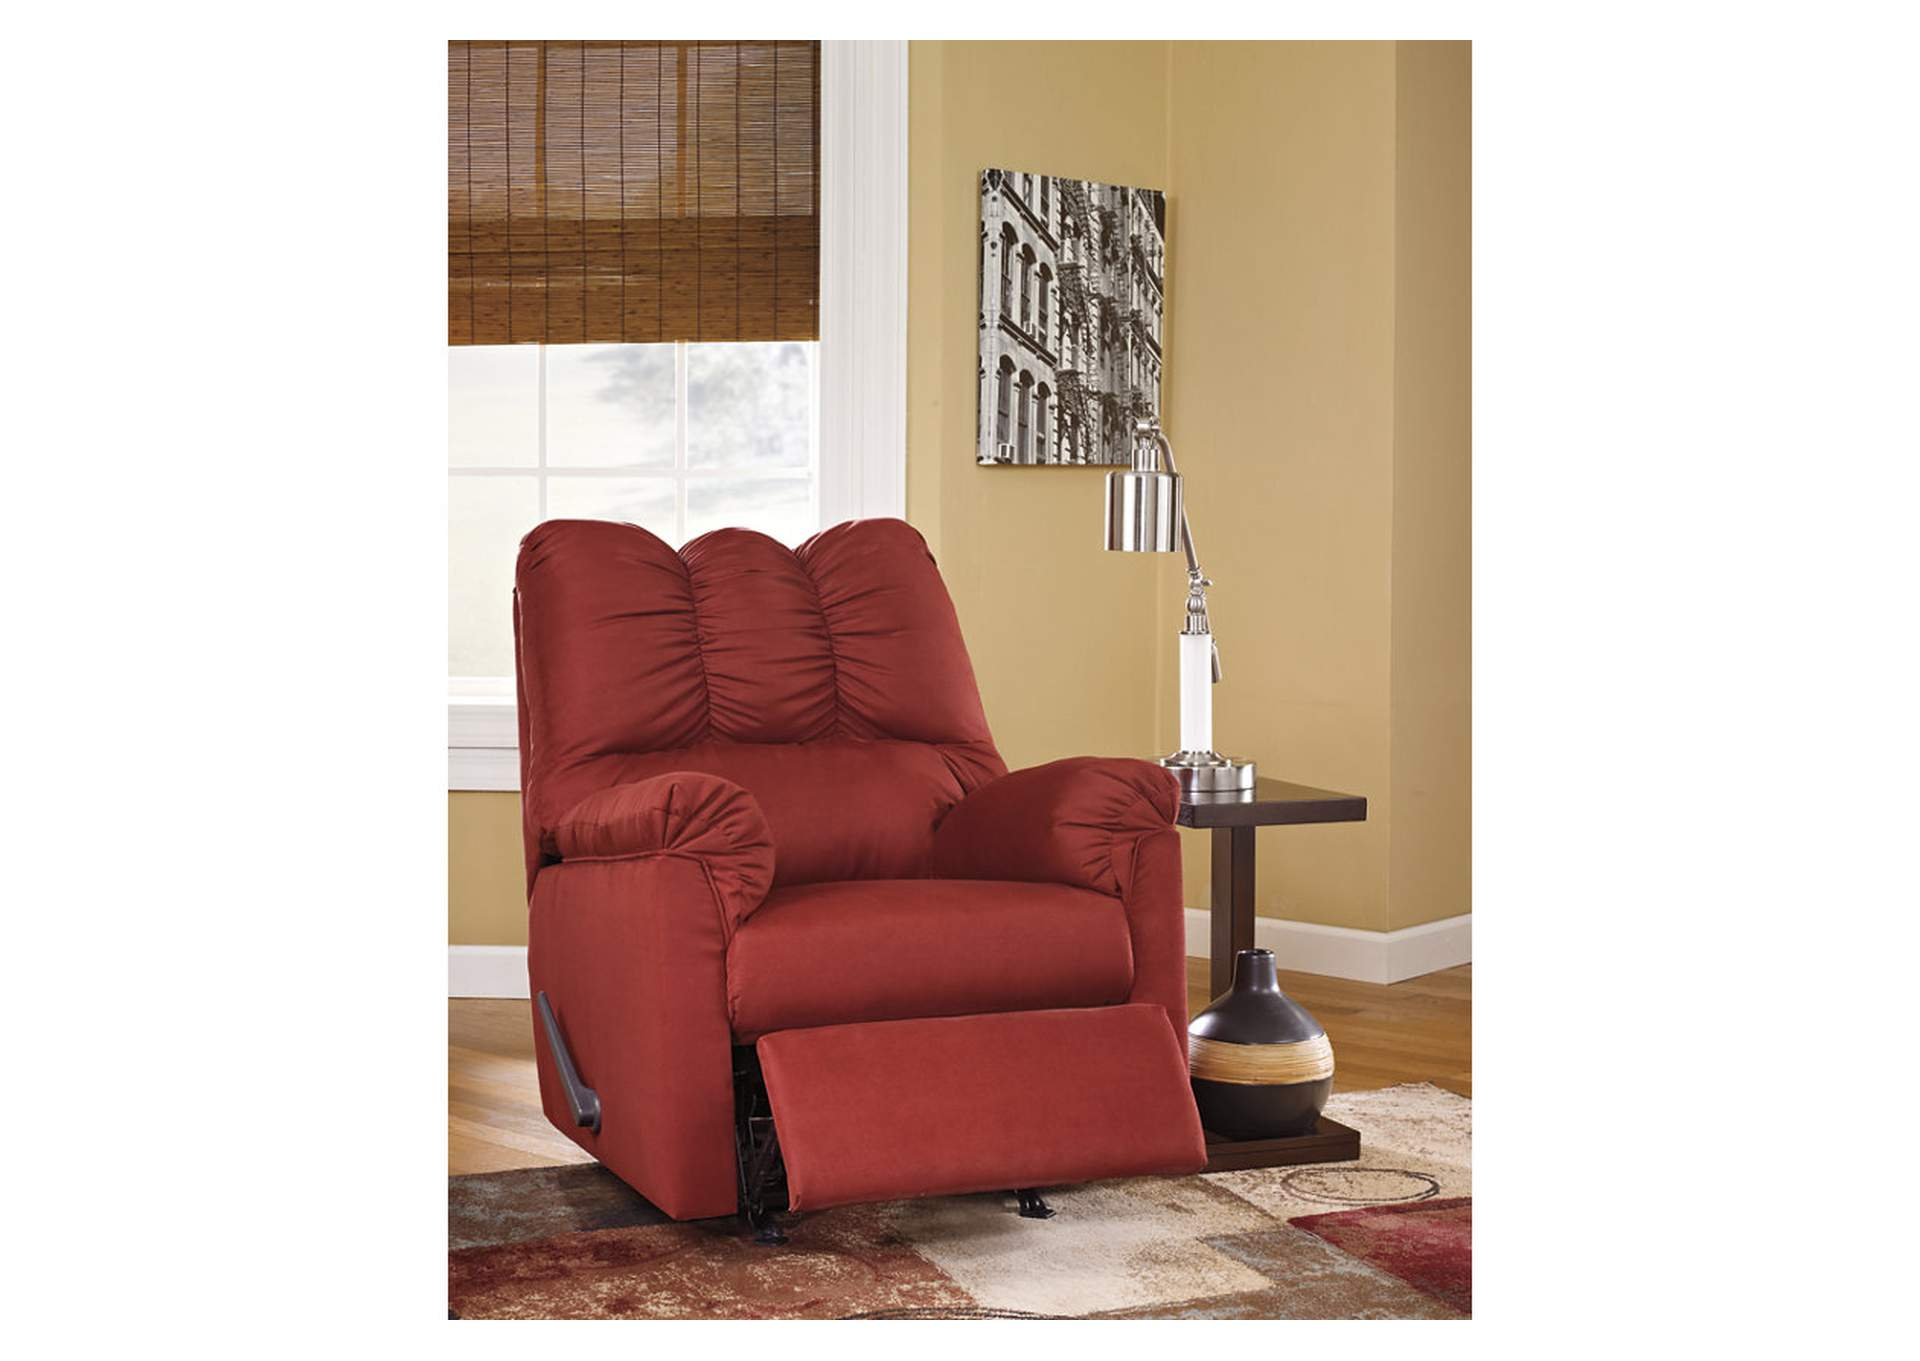 Darcy Salsa Rocker Recliner,Signature Design by Ashley